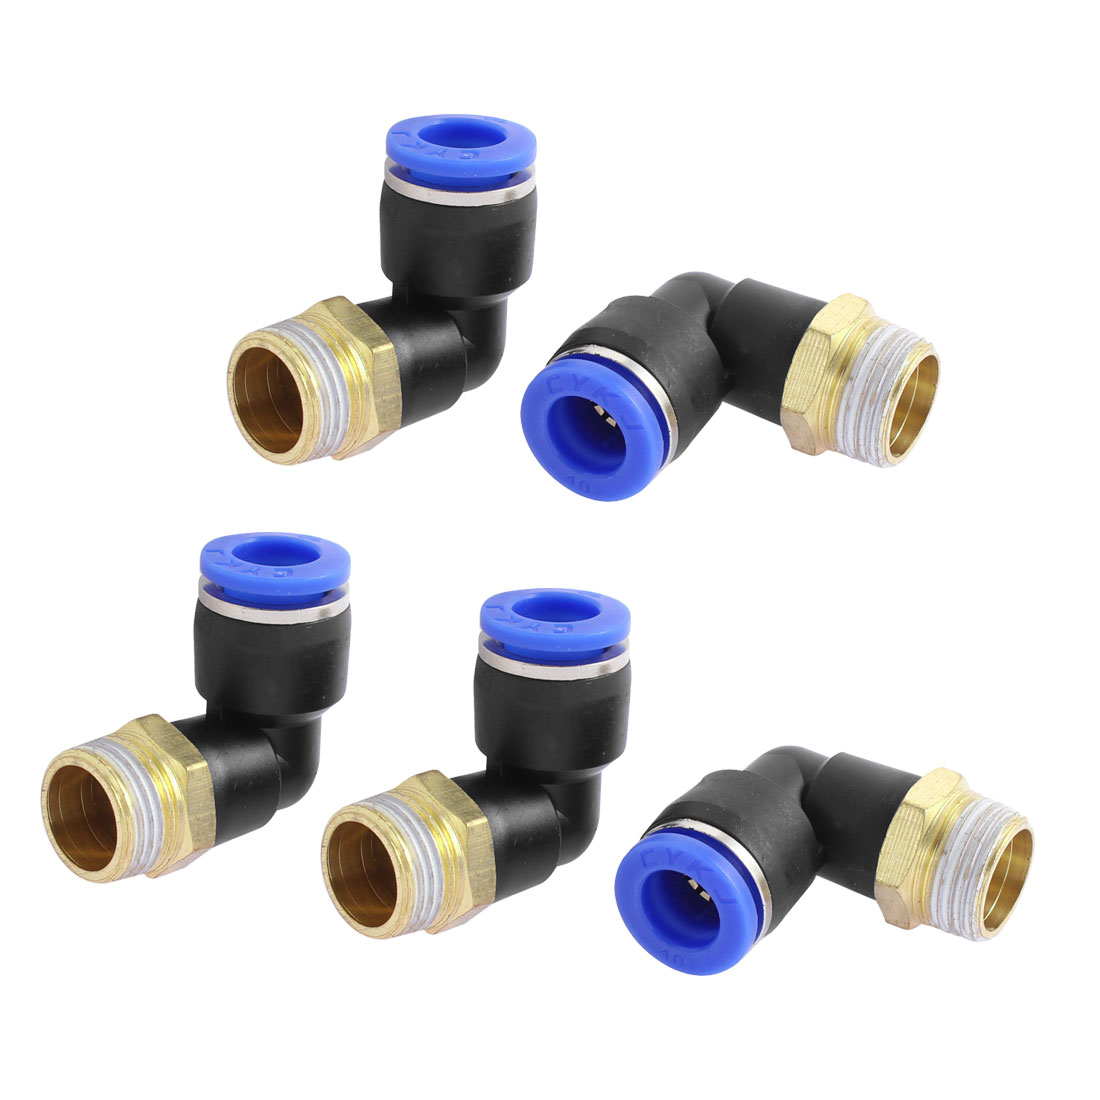 5 Pcs 3/8BSP Male to 10mm Tube Elbow Connectors Quick Connect Fittings PL10-03